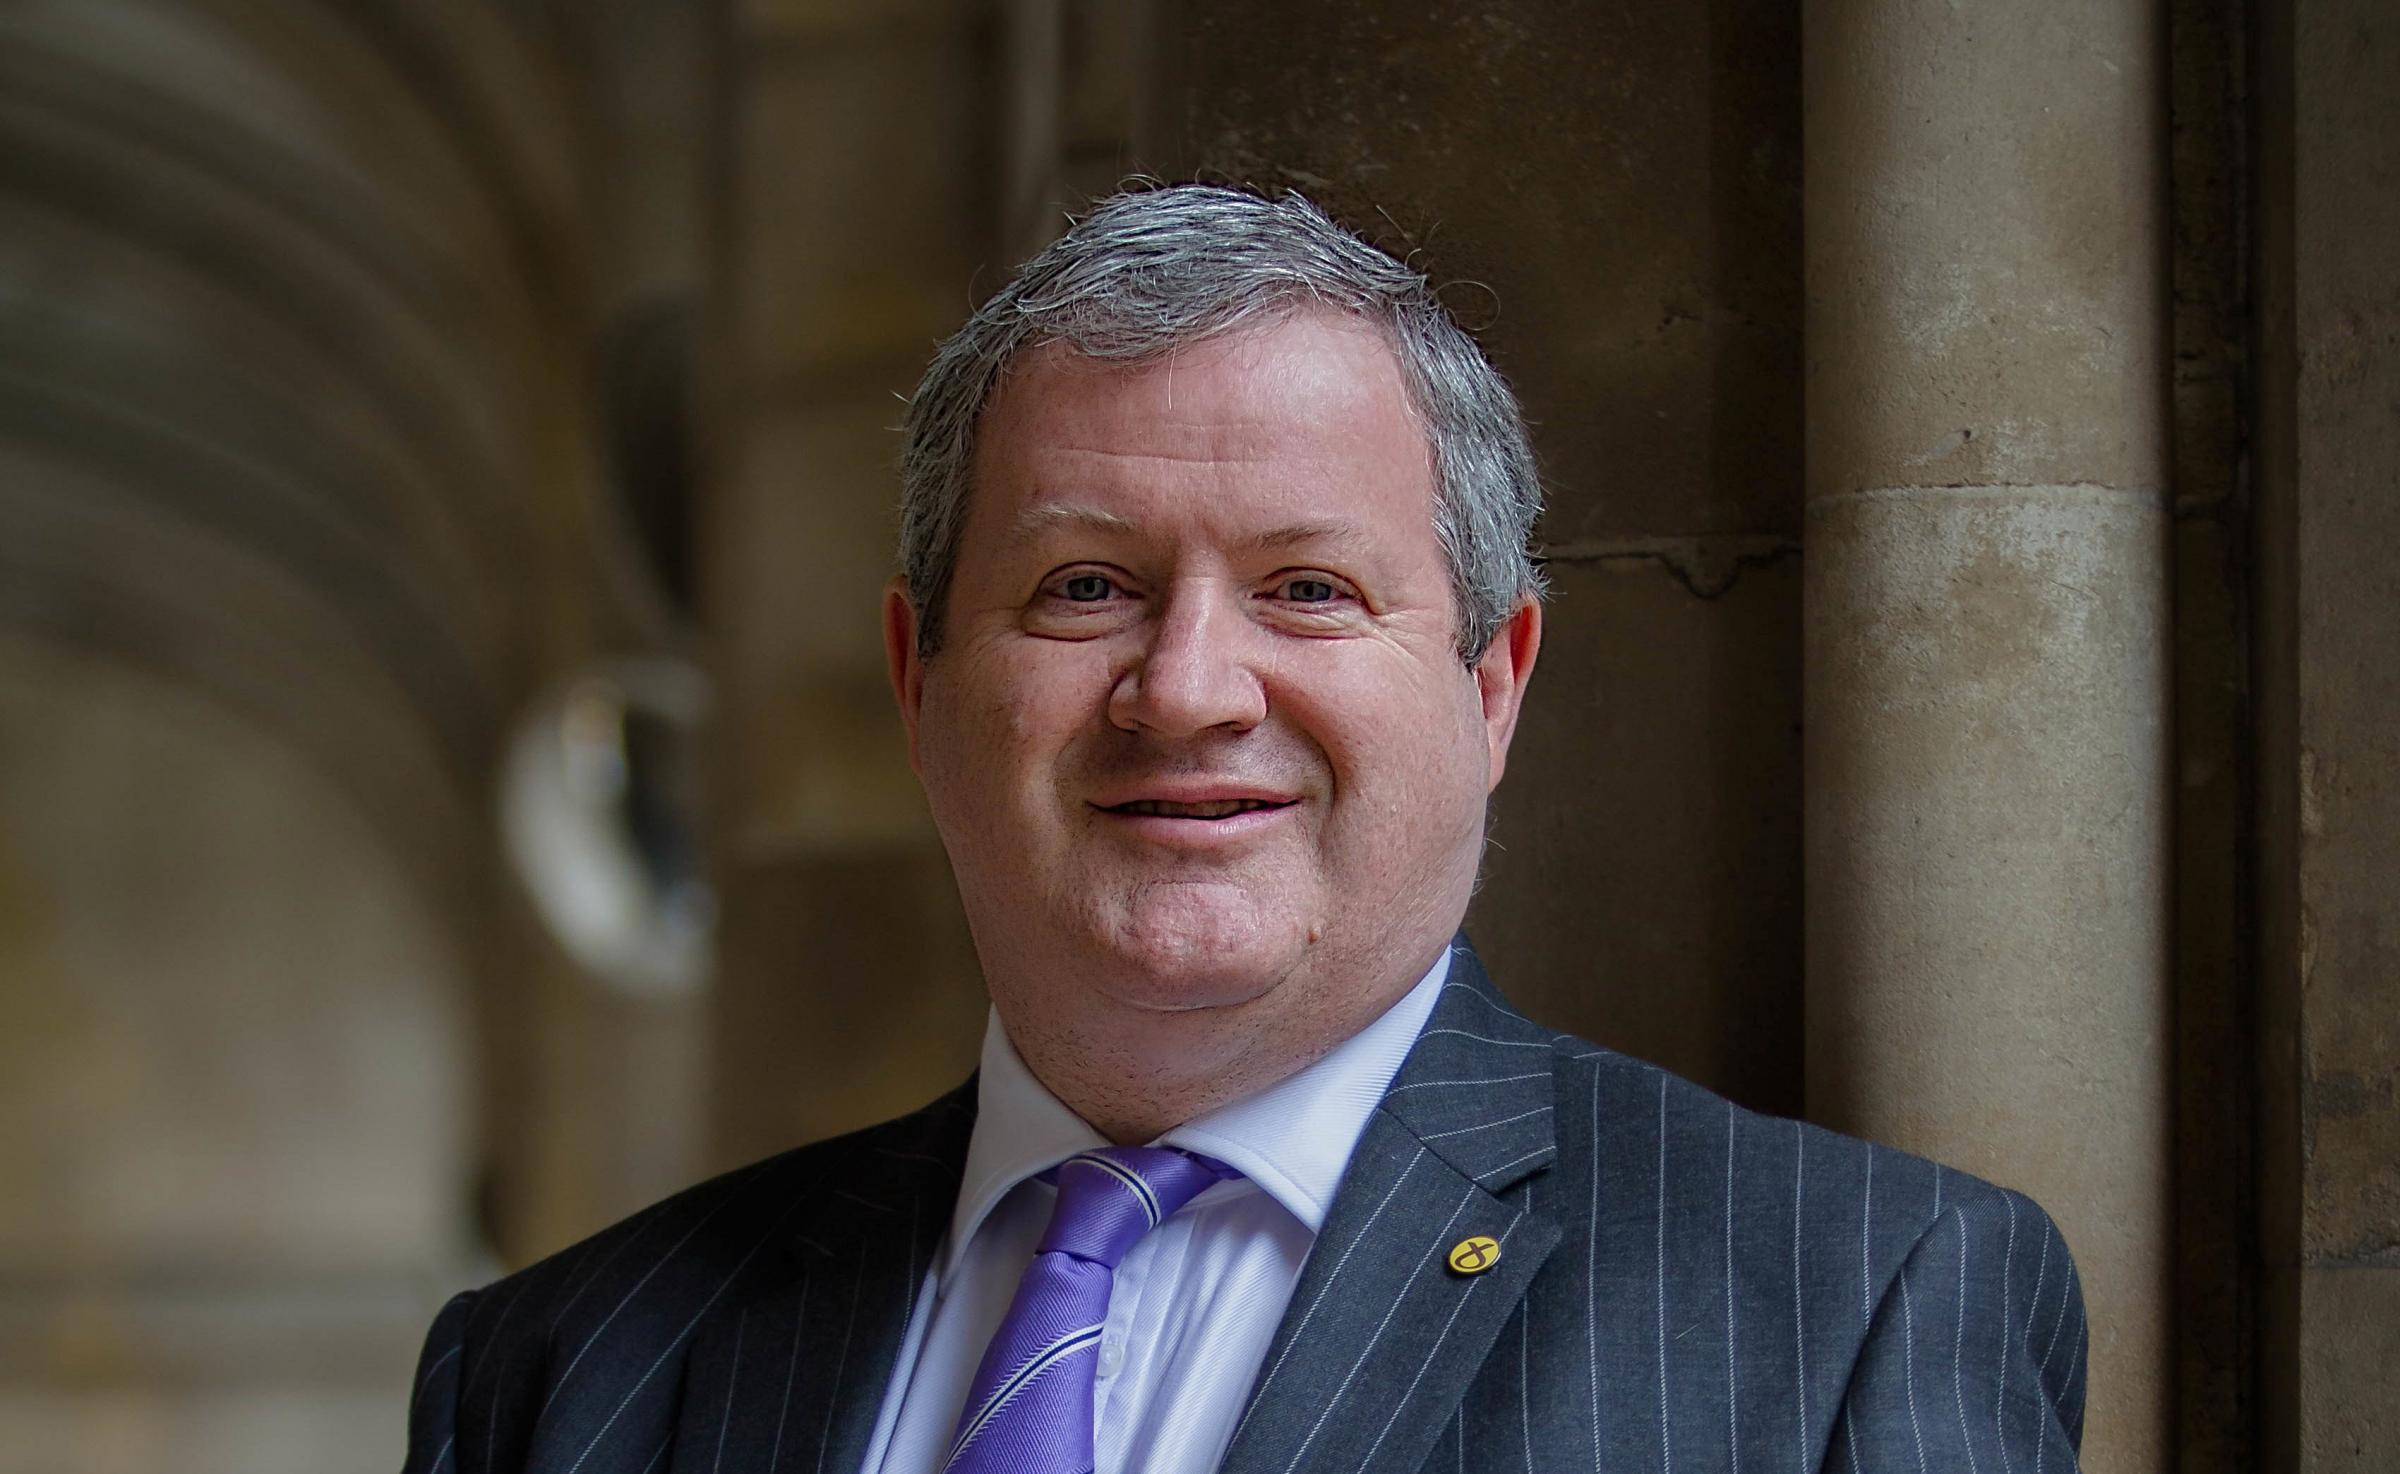 SNP MP Ian Blackford will not be running in the depute leadership race